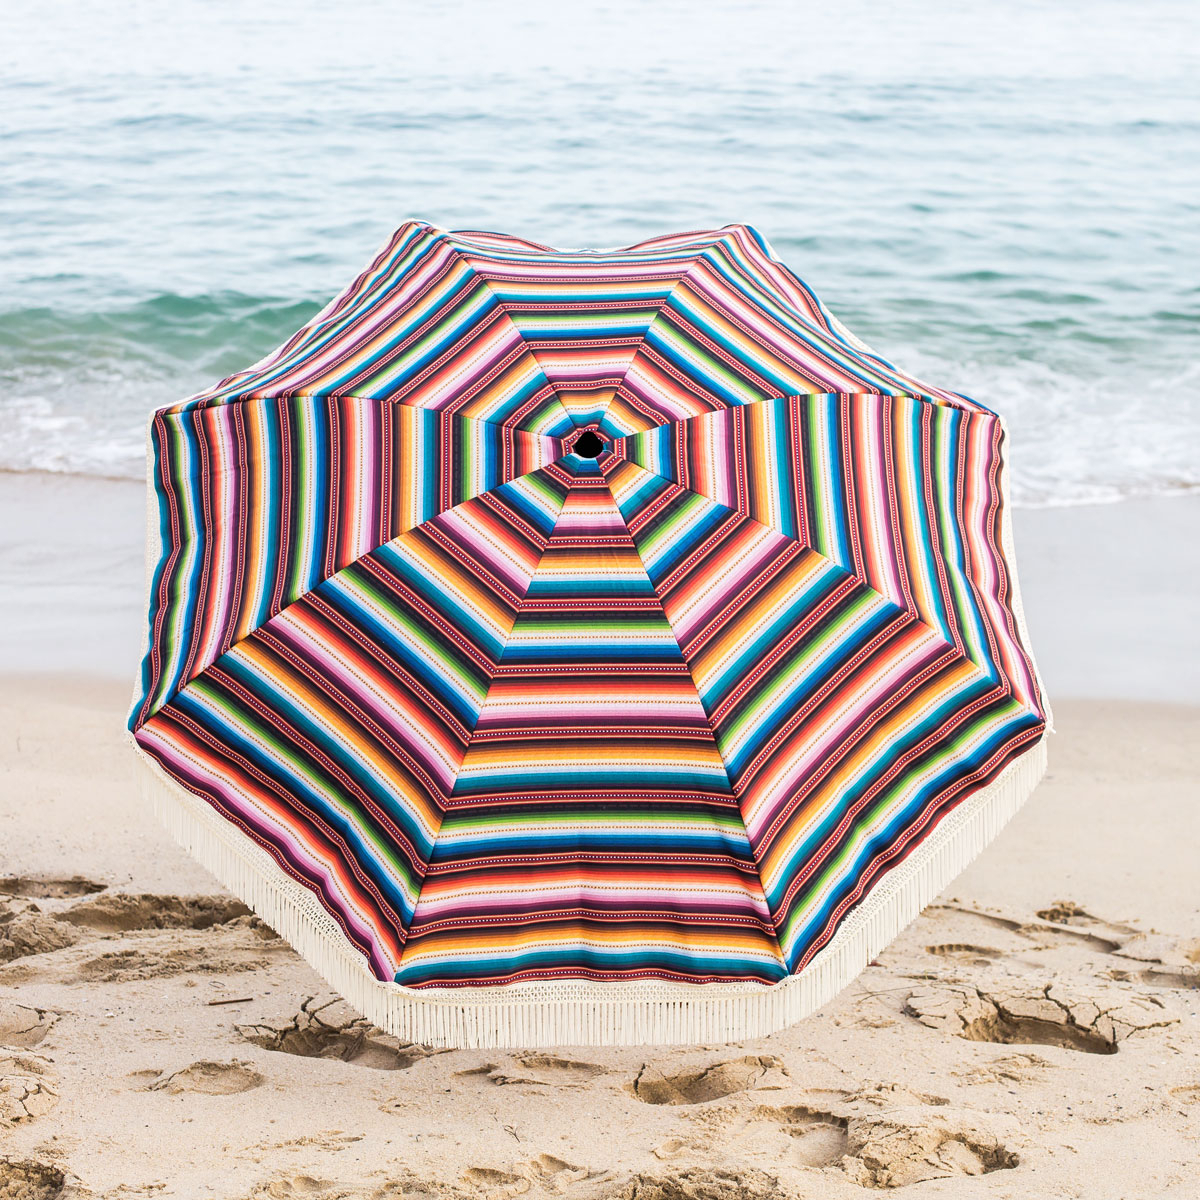 Big 5 Beach Umbrella – Caldwellcountytxoem Throughout Well Known Alyson Joeshade Beach Umbrellas (Gallery 19 of 20)